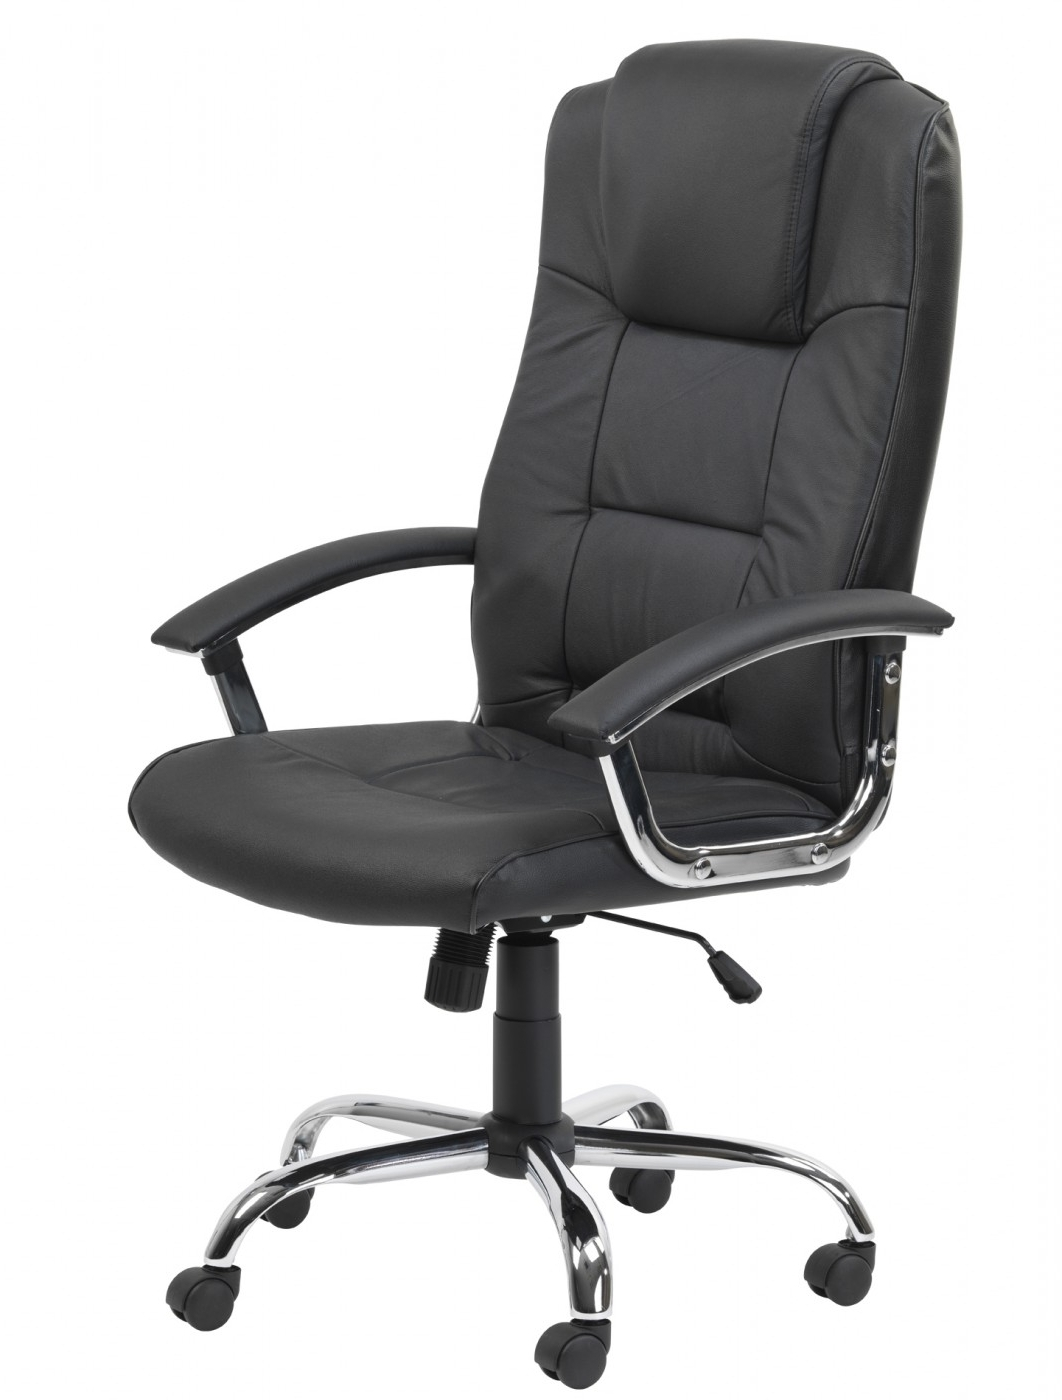 Executive Chair Aoc4201A L (View 10 of 20)